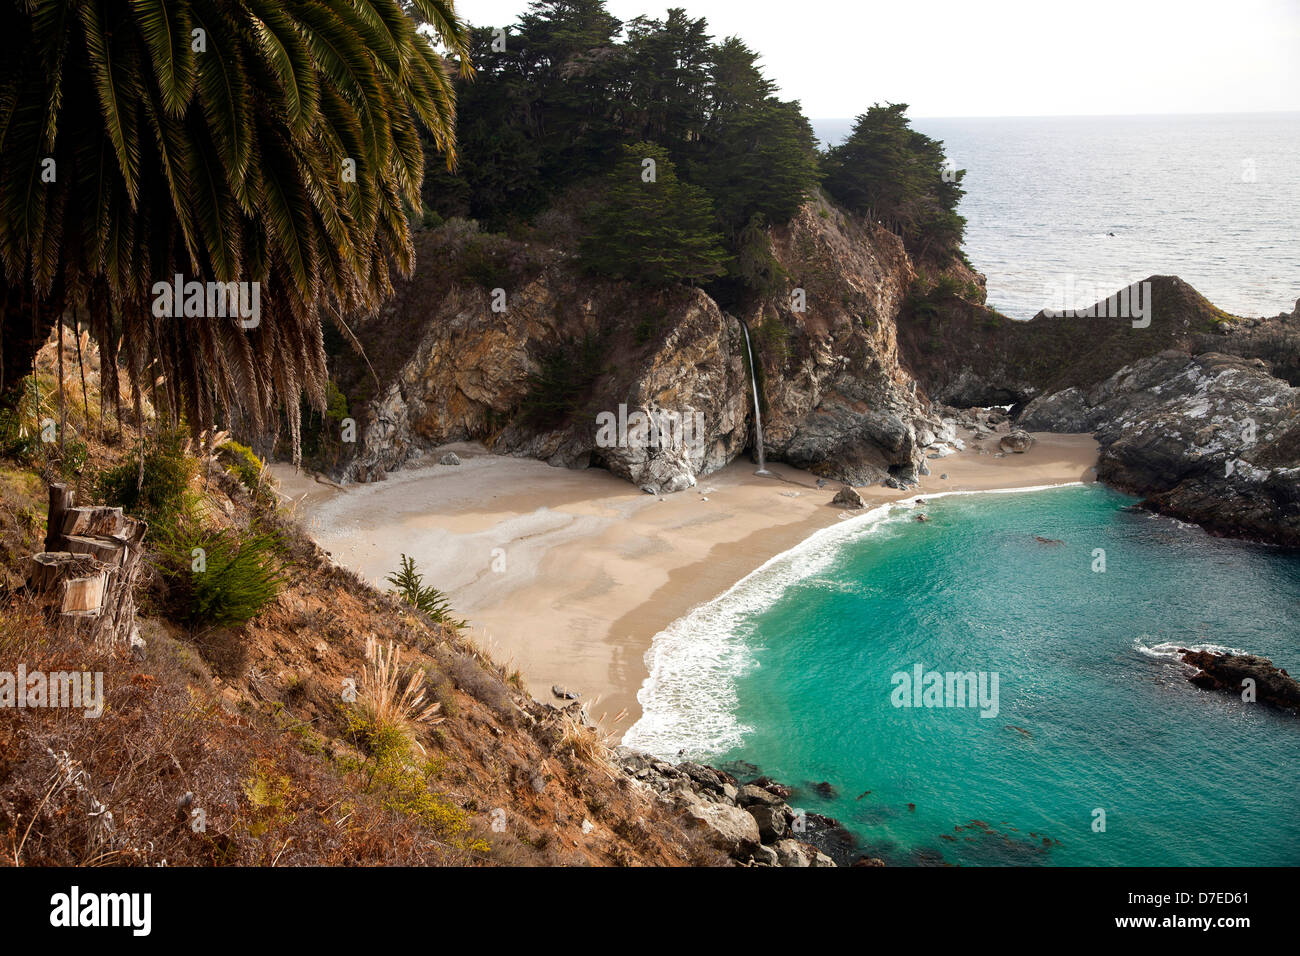 McWay Cove with Waterfall, Julia Pfeiffer Burns State Park on the coast of Big Sur, California, United States of - Stock Image